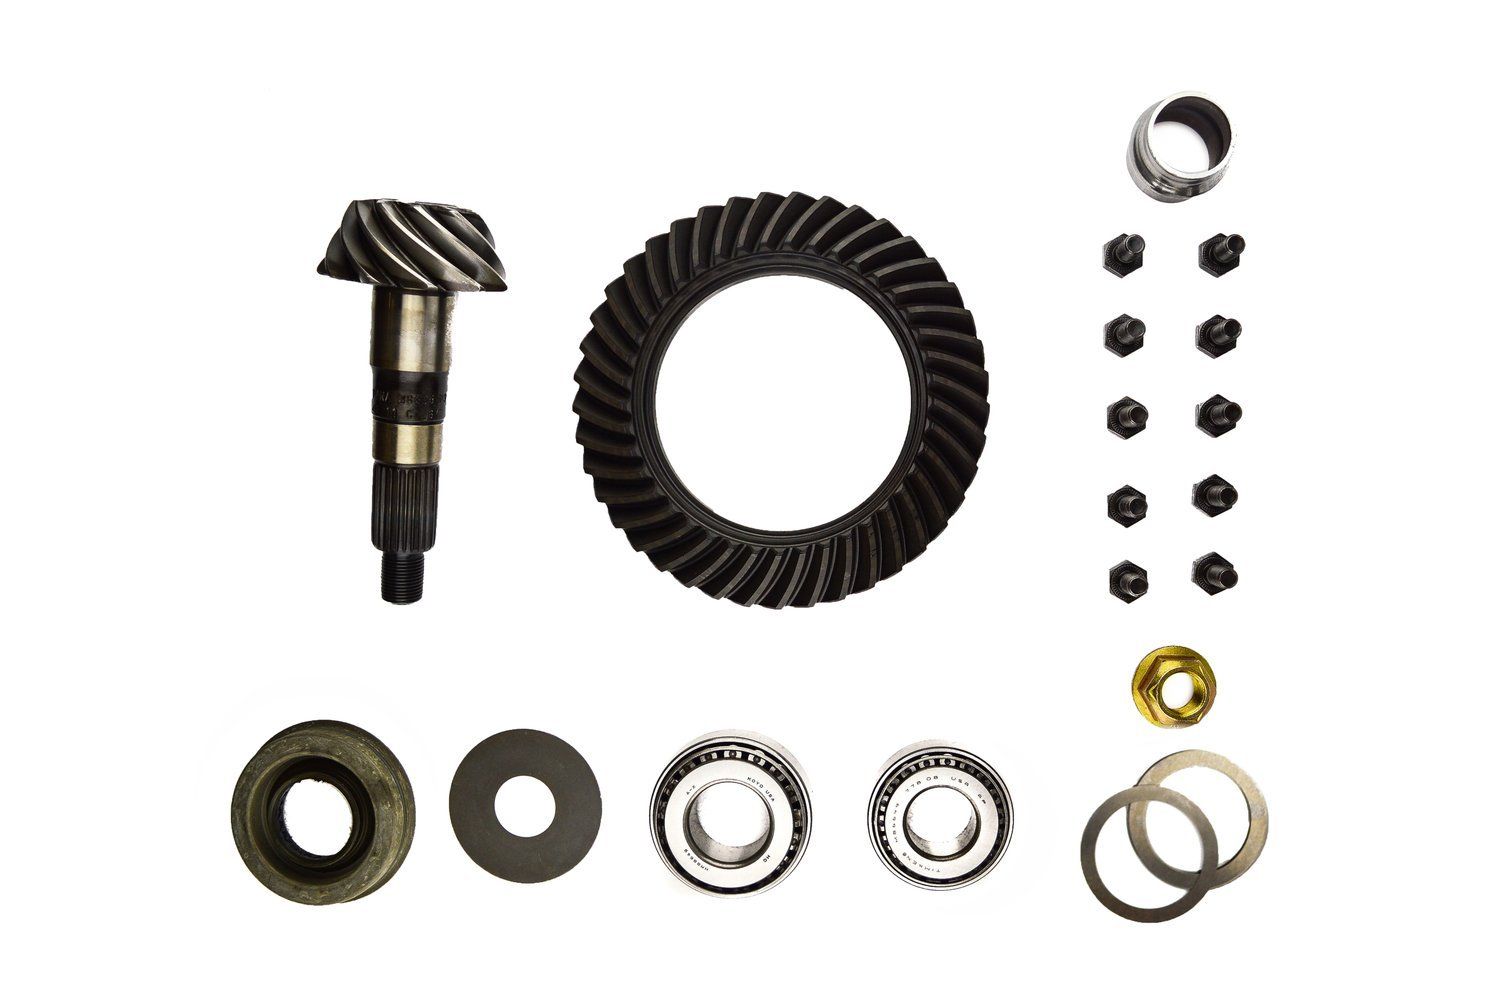 Spicer 708132-4 Differential Ring//Pinion